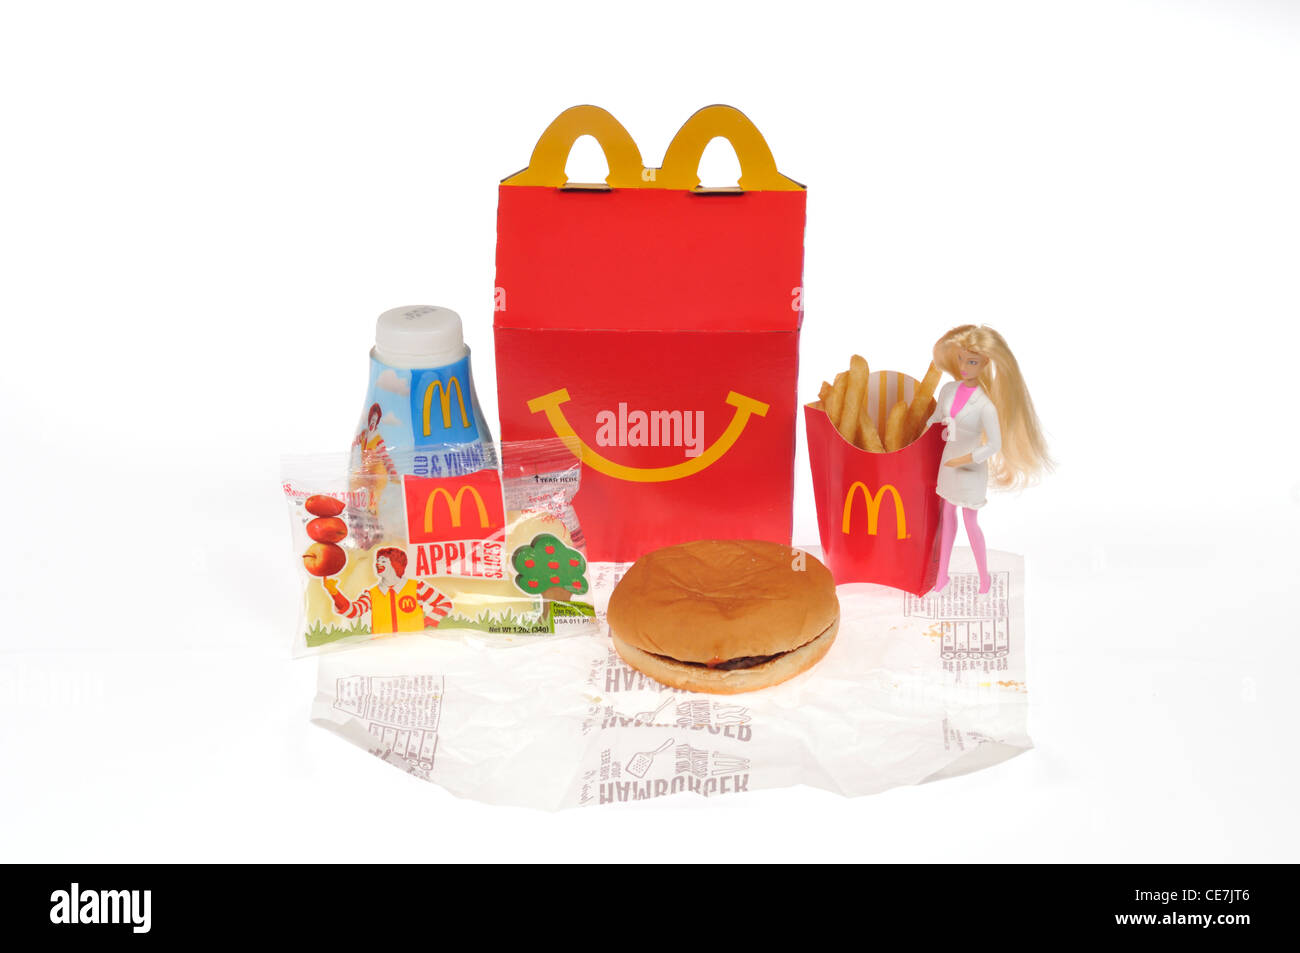 McDonald's Barbie Happy Meal on white background cutout - Stock Image